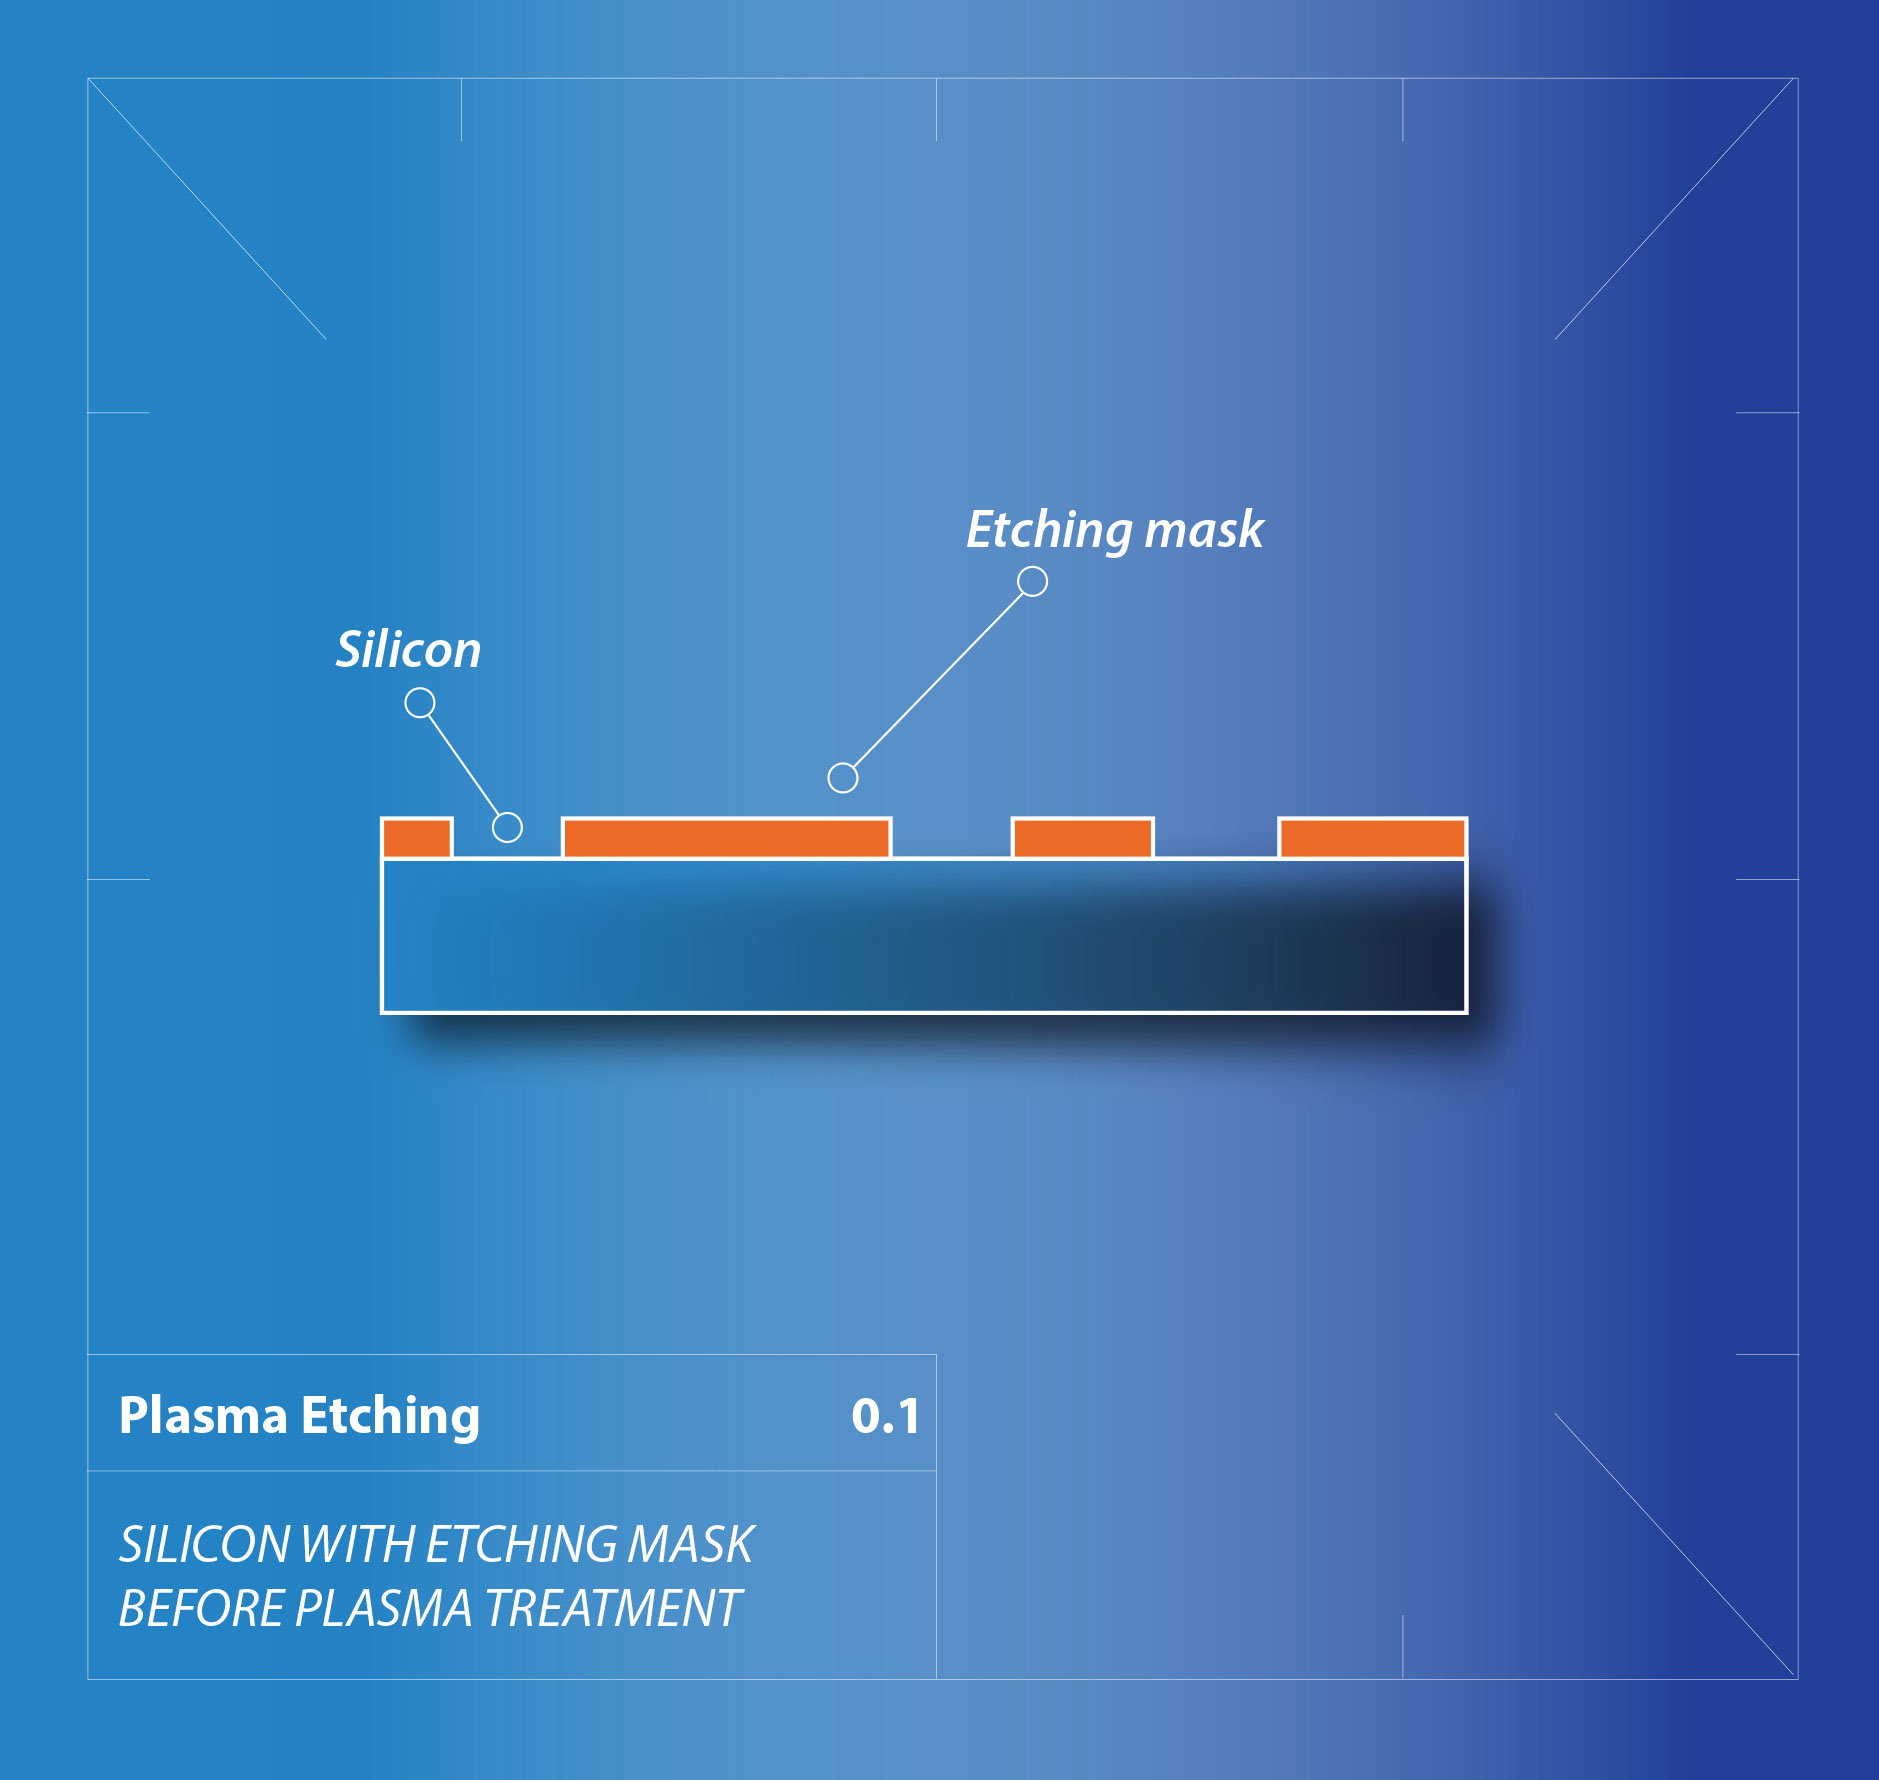 a scientific illustration of a part prior to plasma etching